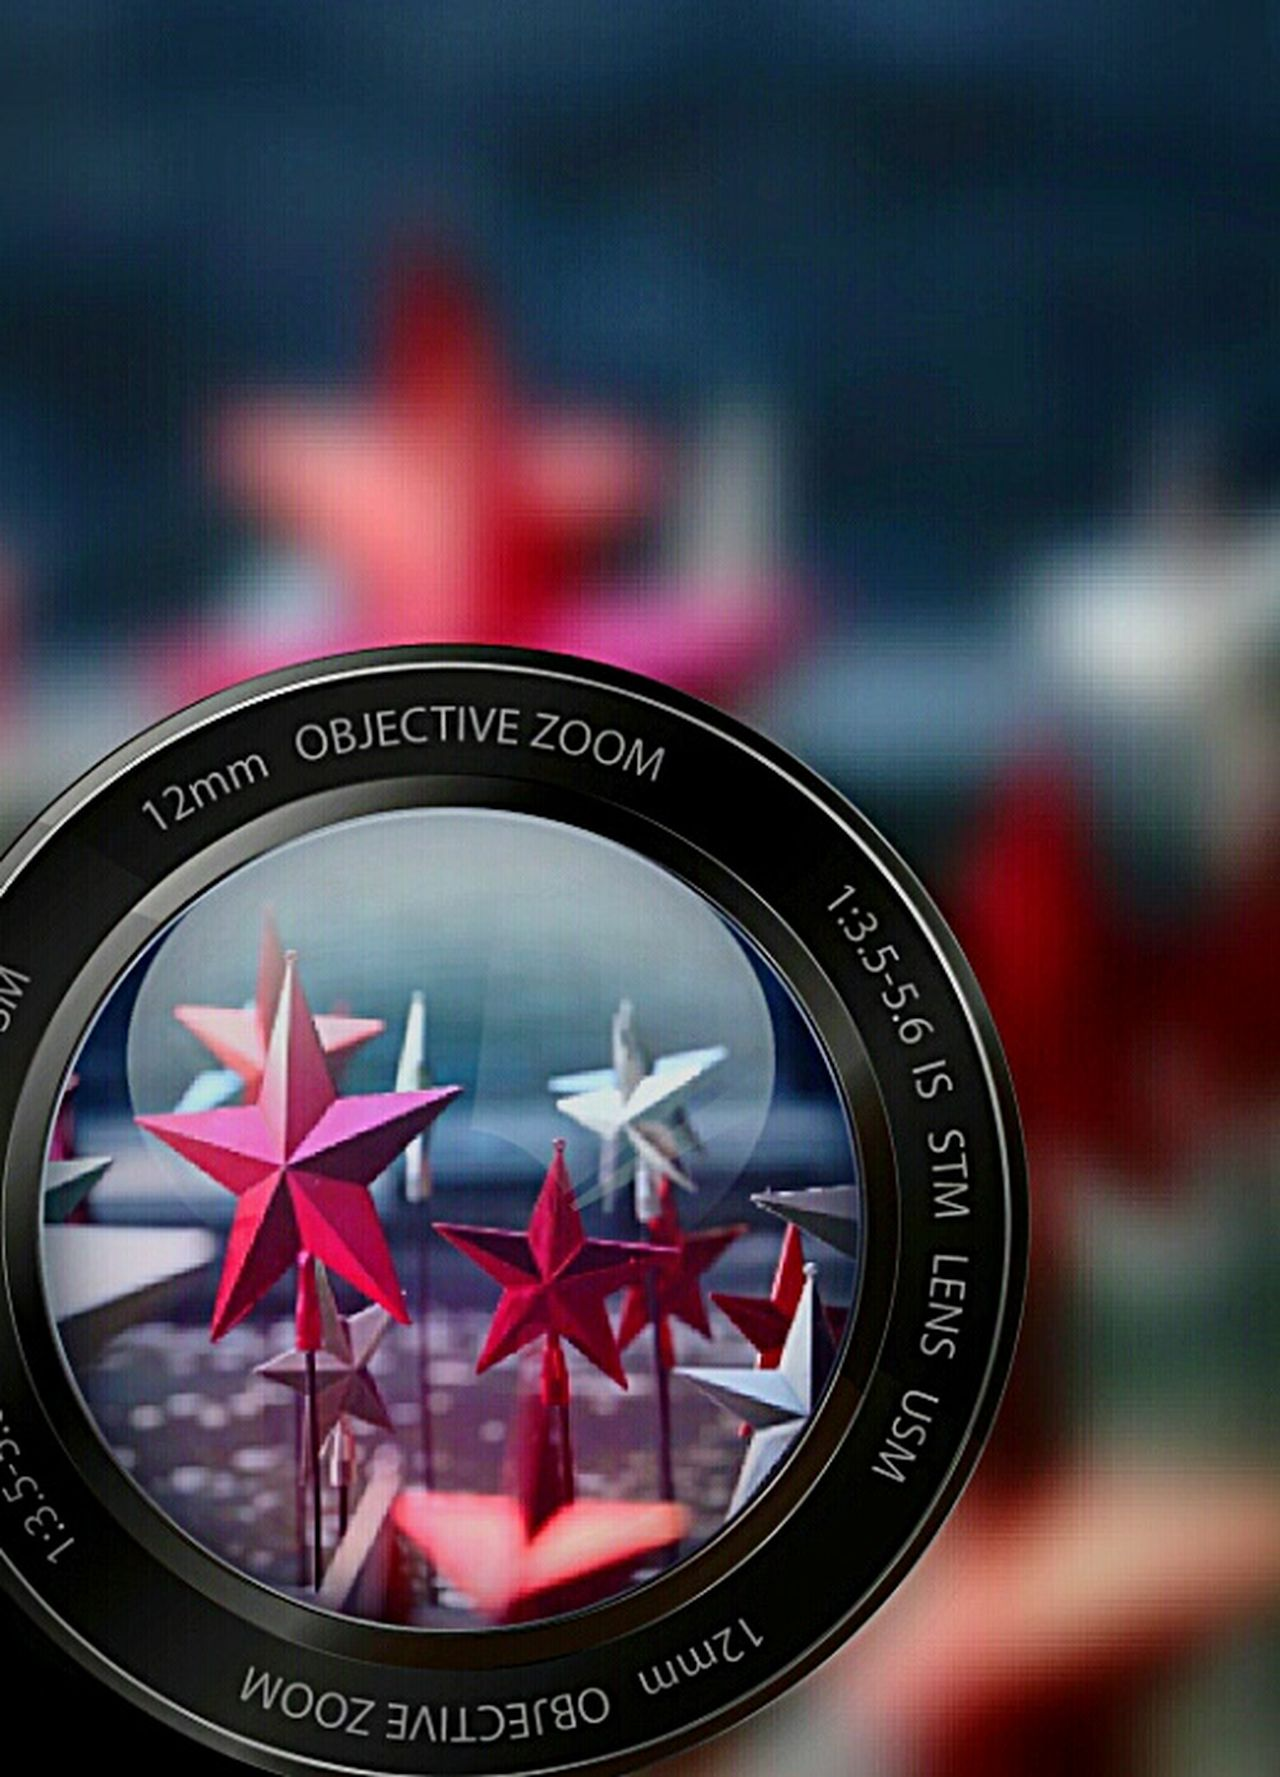 Close-up Guidance No People Scenics EyeEm Gallery Streamzoofamily EyeEmNewHere Uniqueness Lieblingsteil Star - Space Astronomy Blurred Motion Stars Oh My Stars Star Sign Patriotic Color Photography Lensculture Tadah!! Tadaa Community Hotrockettalkamolly I Like My Own Pictures!✌😎 Jackles! And Me. Carries Picks My Thing My Favorite Things Reedited